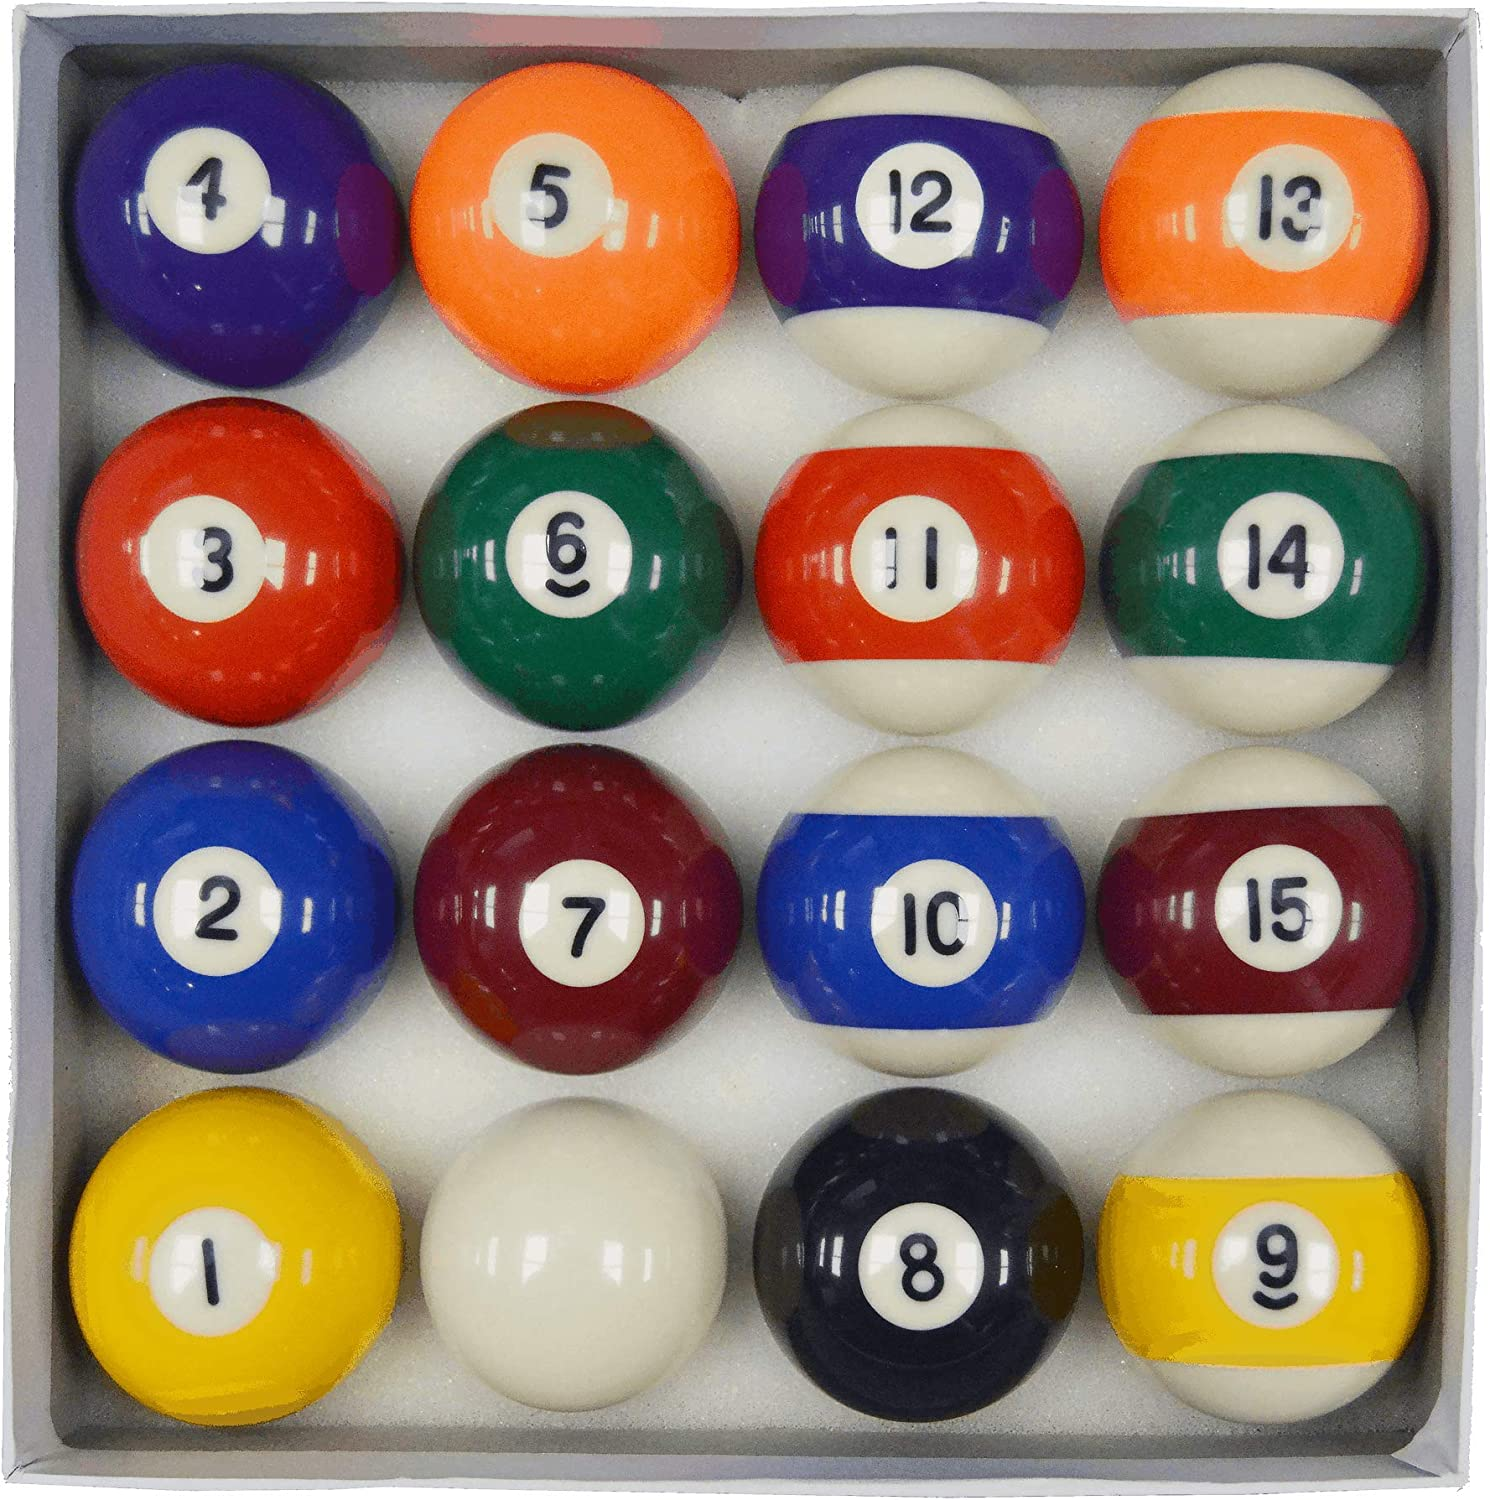 Homegames Spots and Stripes Pool Table Ball Set UK 2 Competition by Competition: Amazon.es: Deportes y aire libre